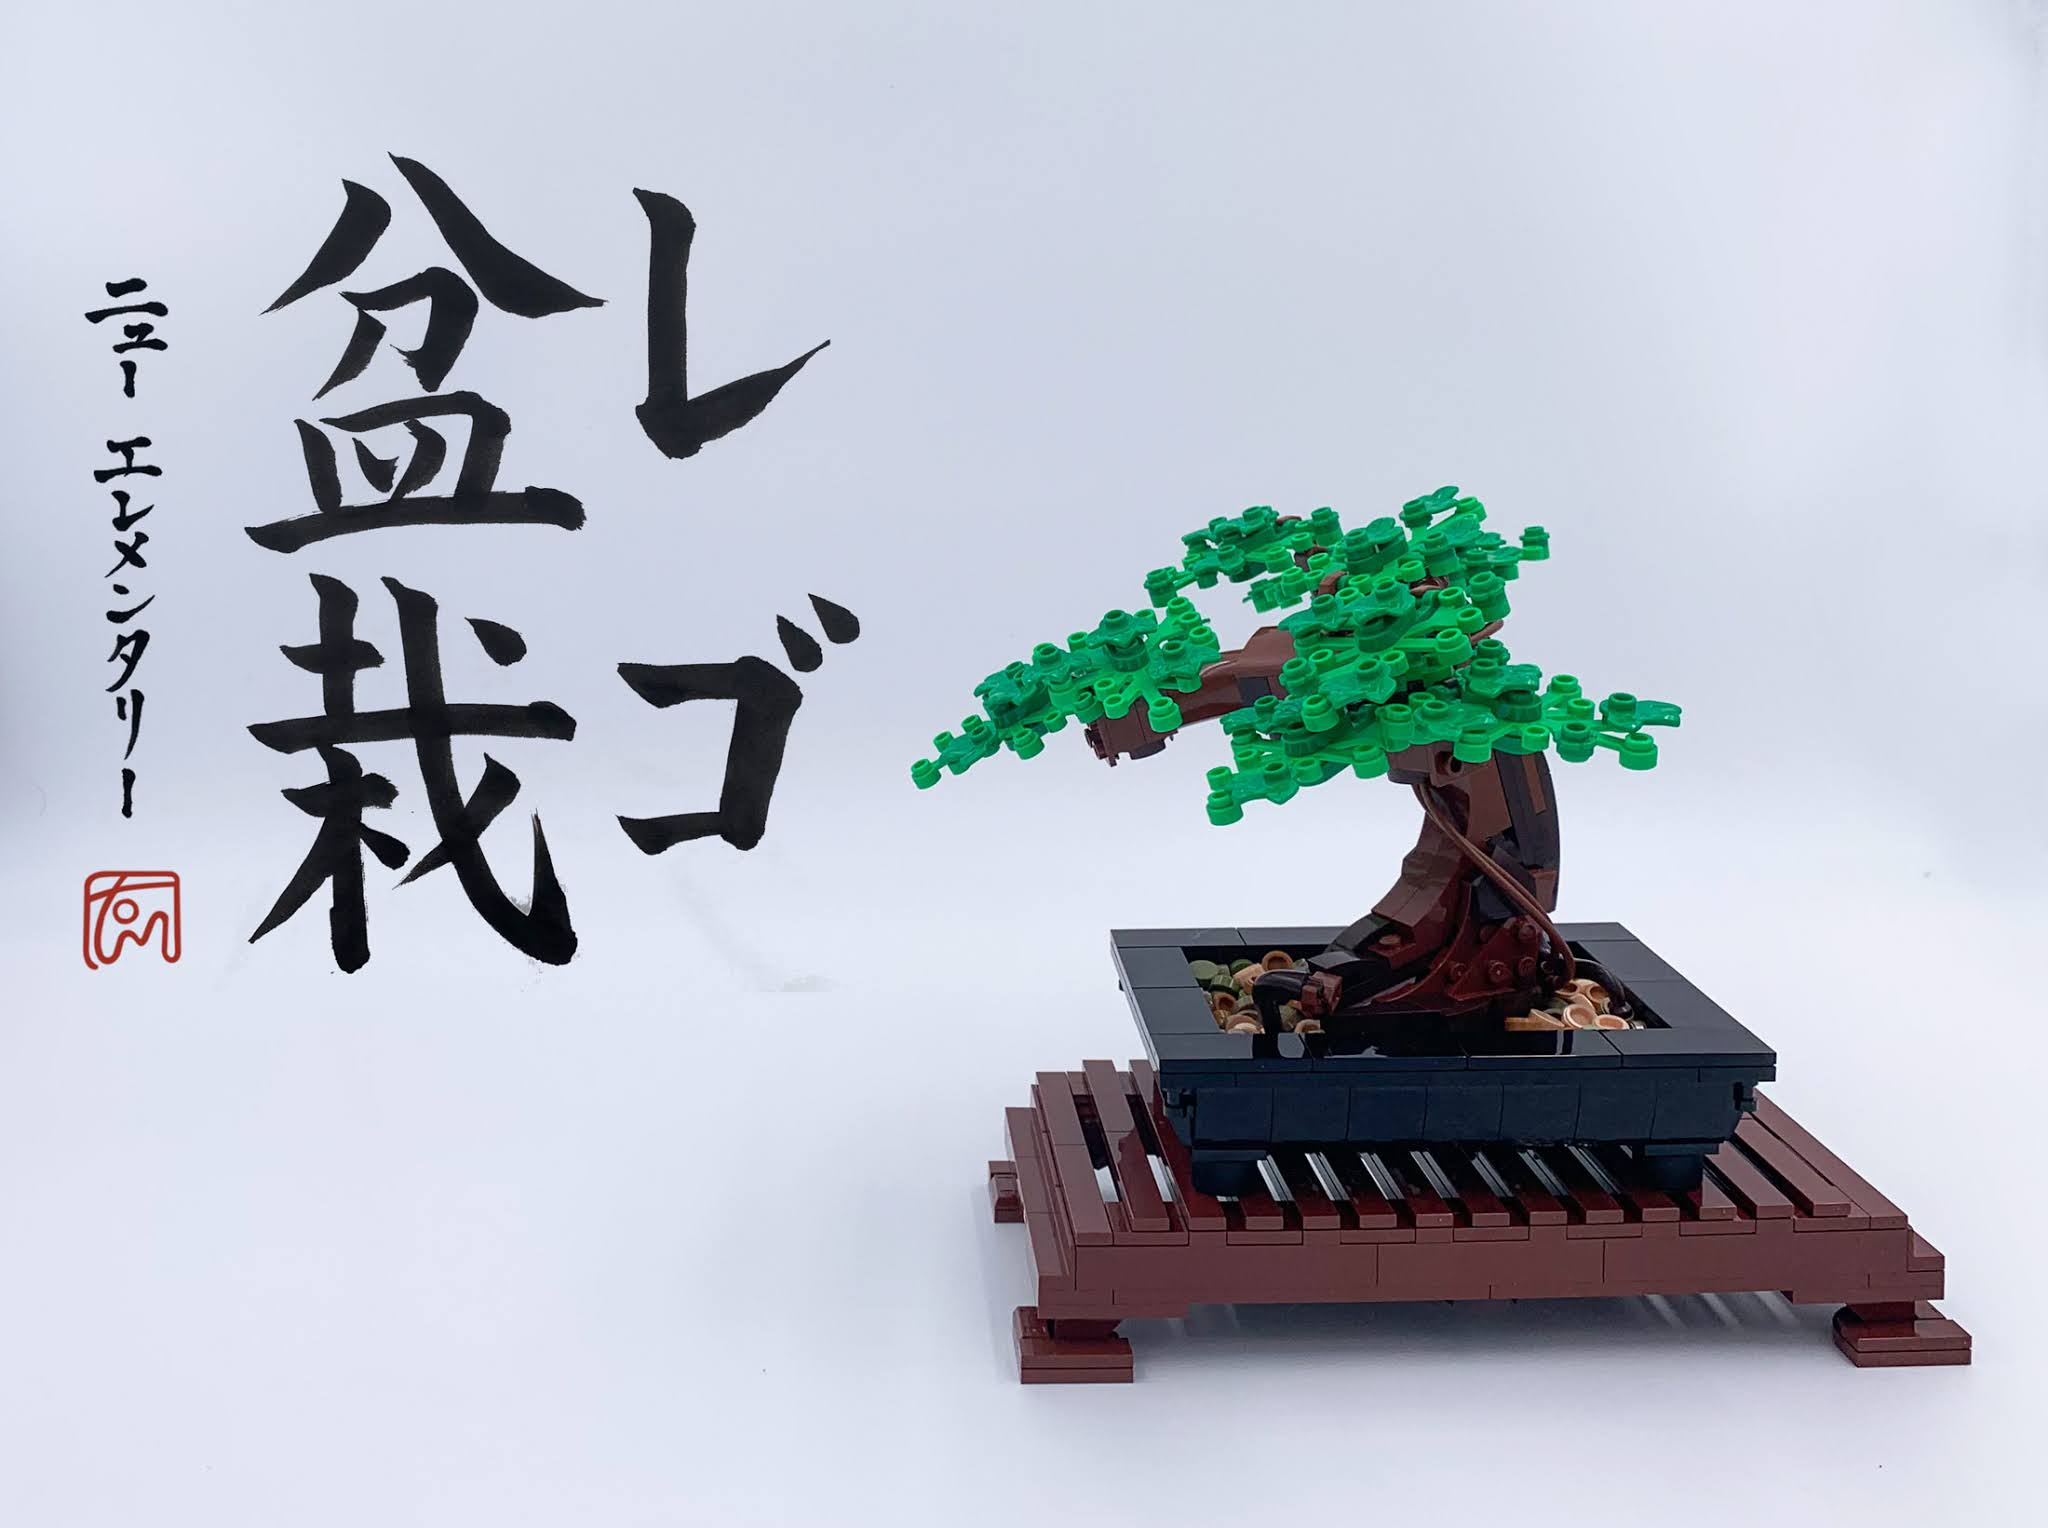 Lego Botanical Collection Review 10281 Bonsai Tree New Elementary Lego Parts Sets And Techniques